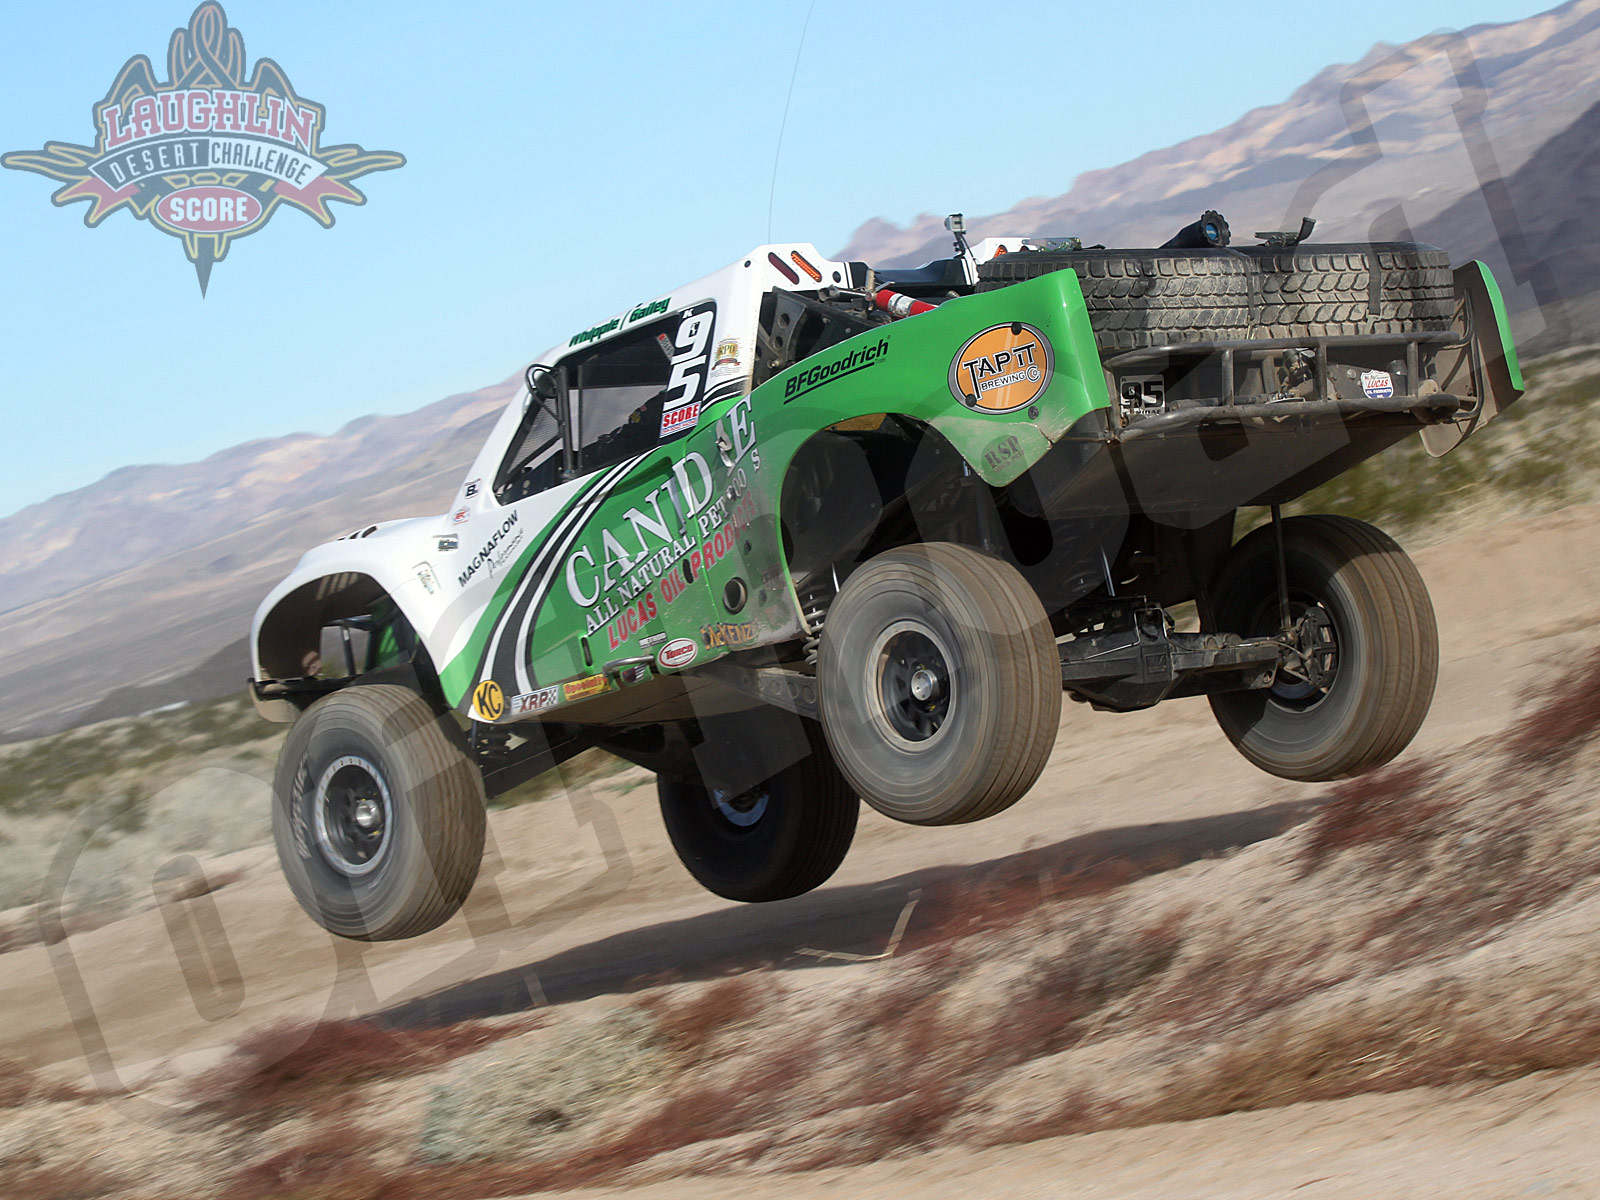 030311or 6777+2011 score laughlin desert challenge+trophy trucks sunday